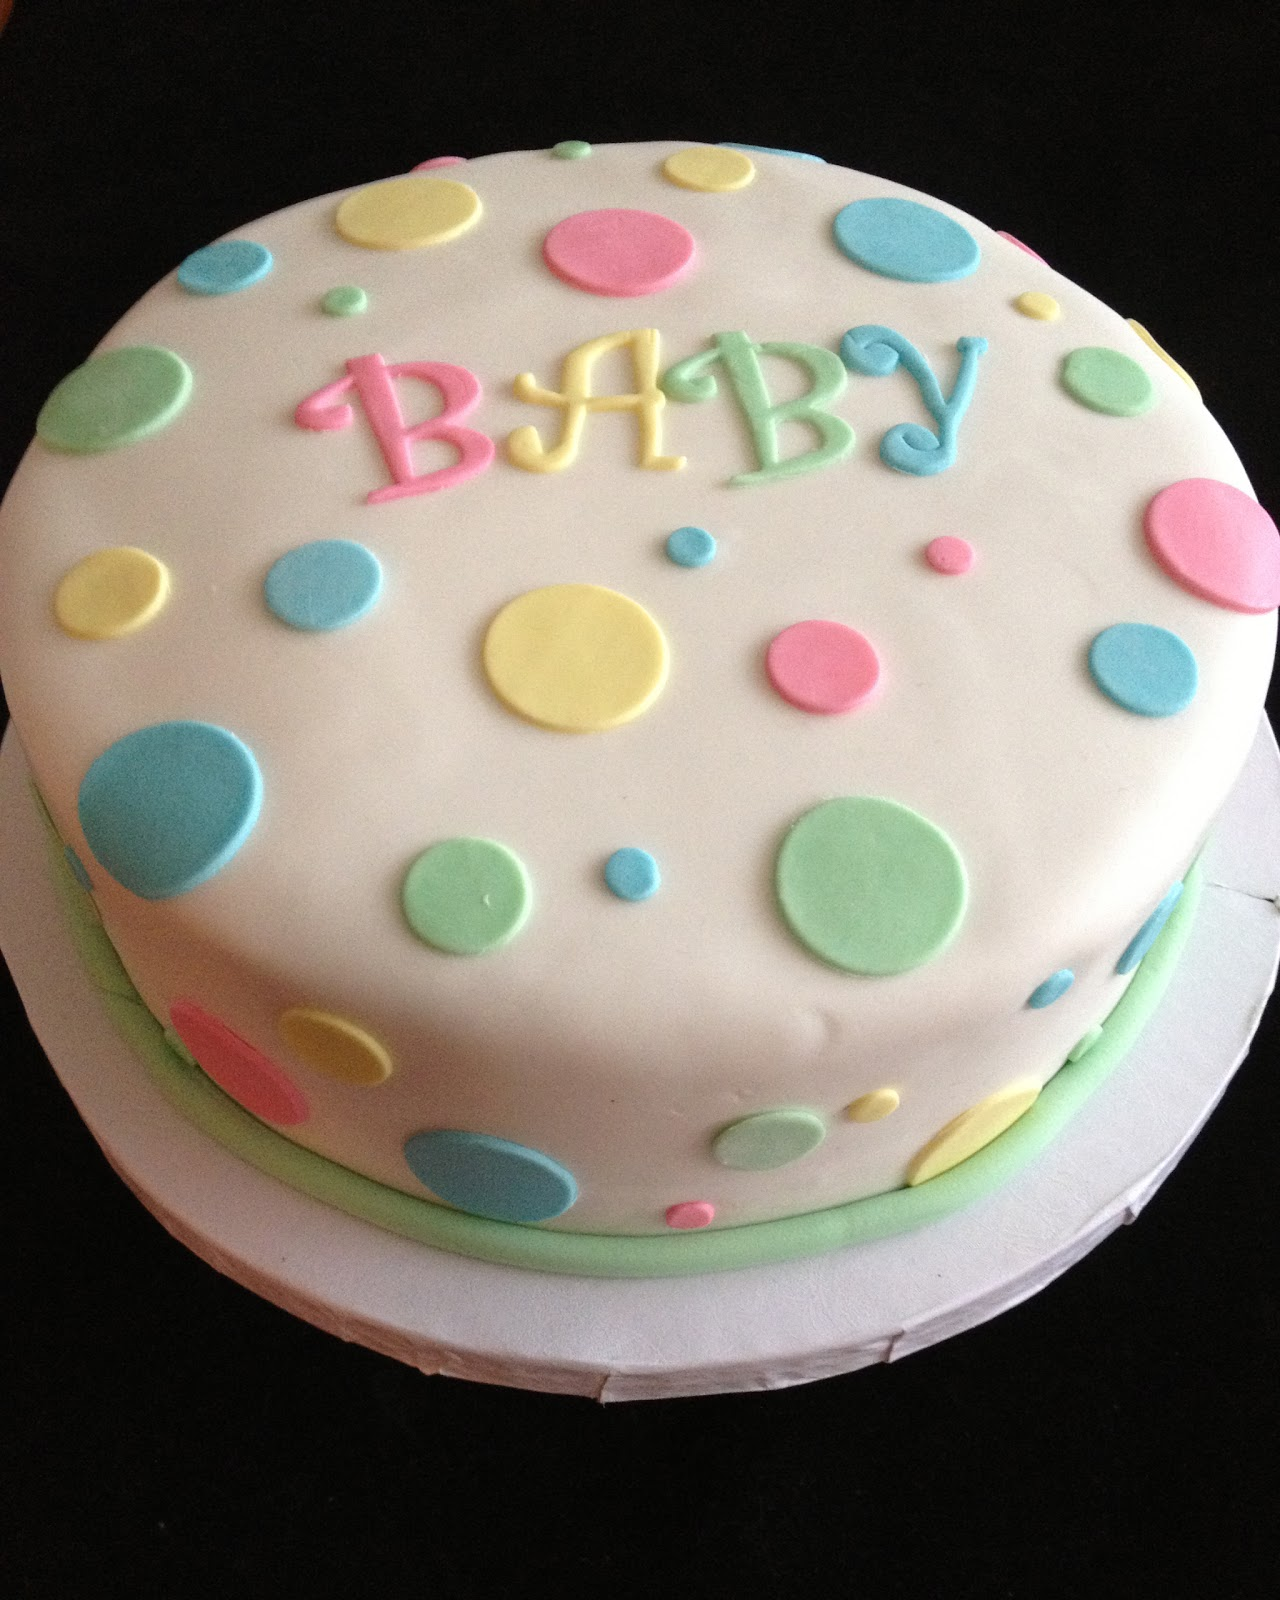 Pictures Of Baby Shower Cake Designs : Baby Shower Cake